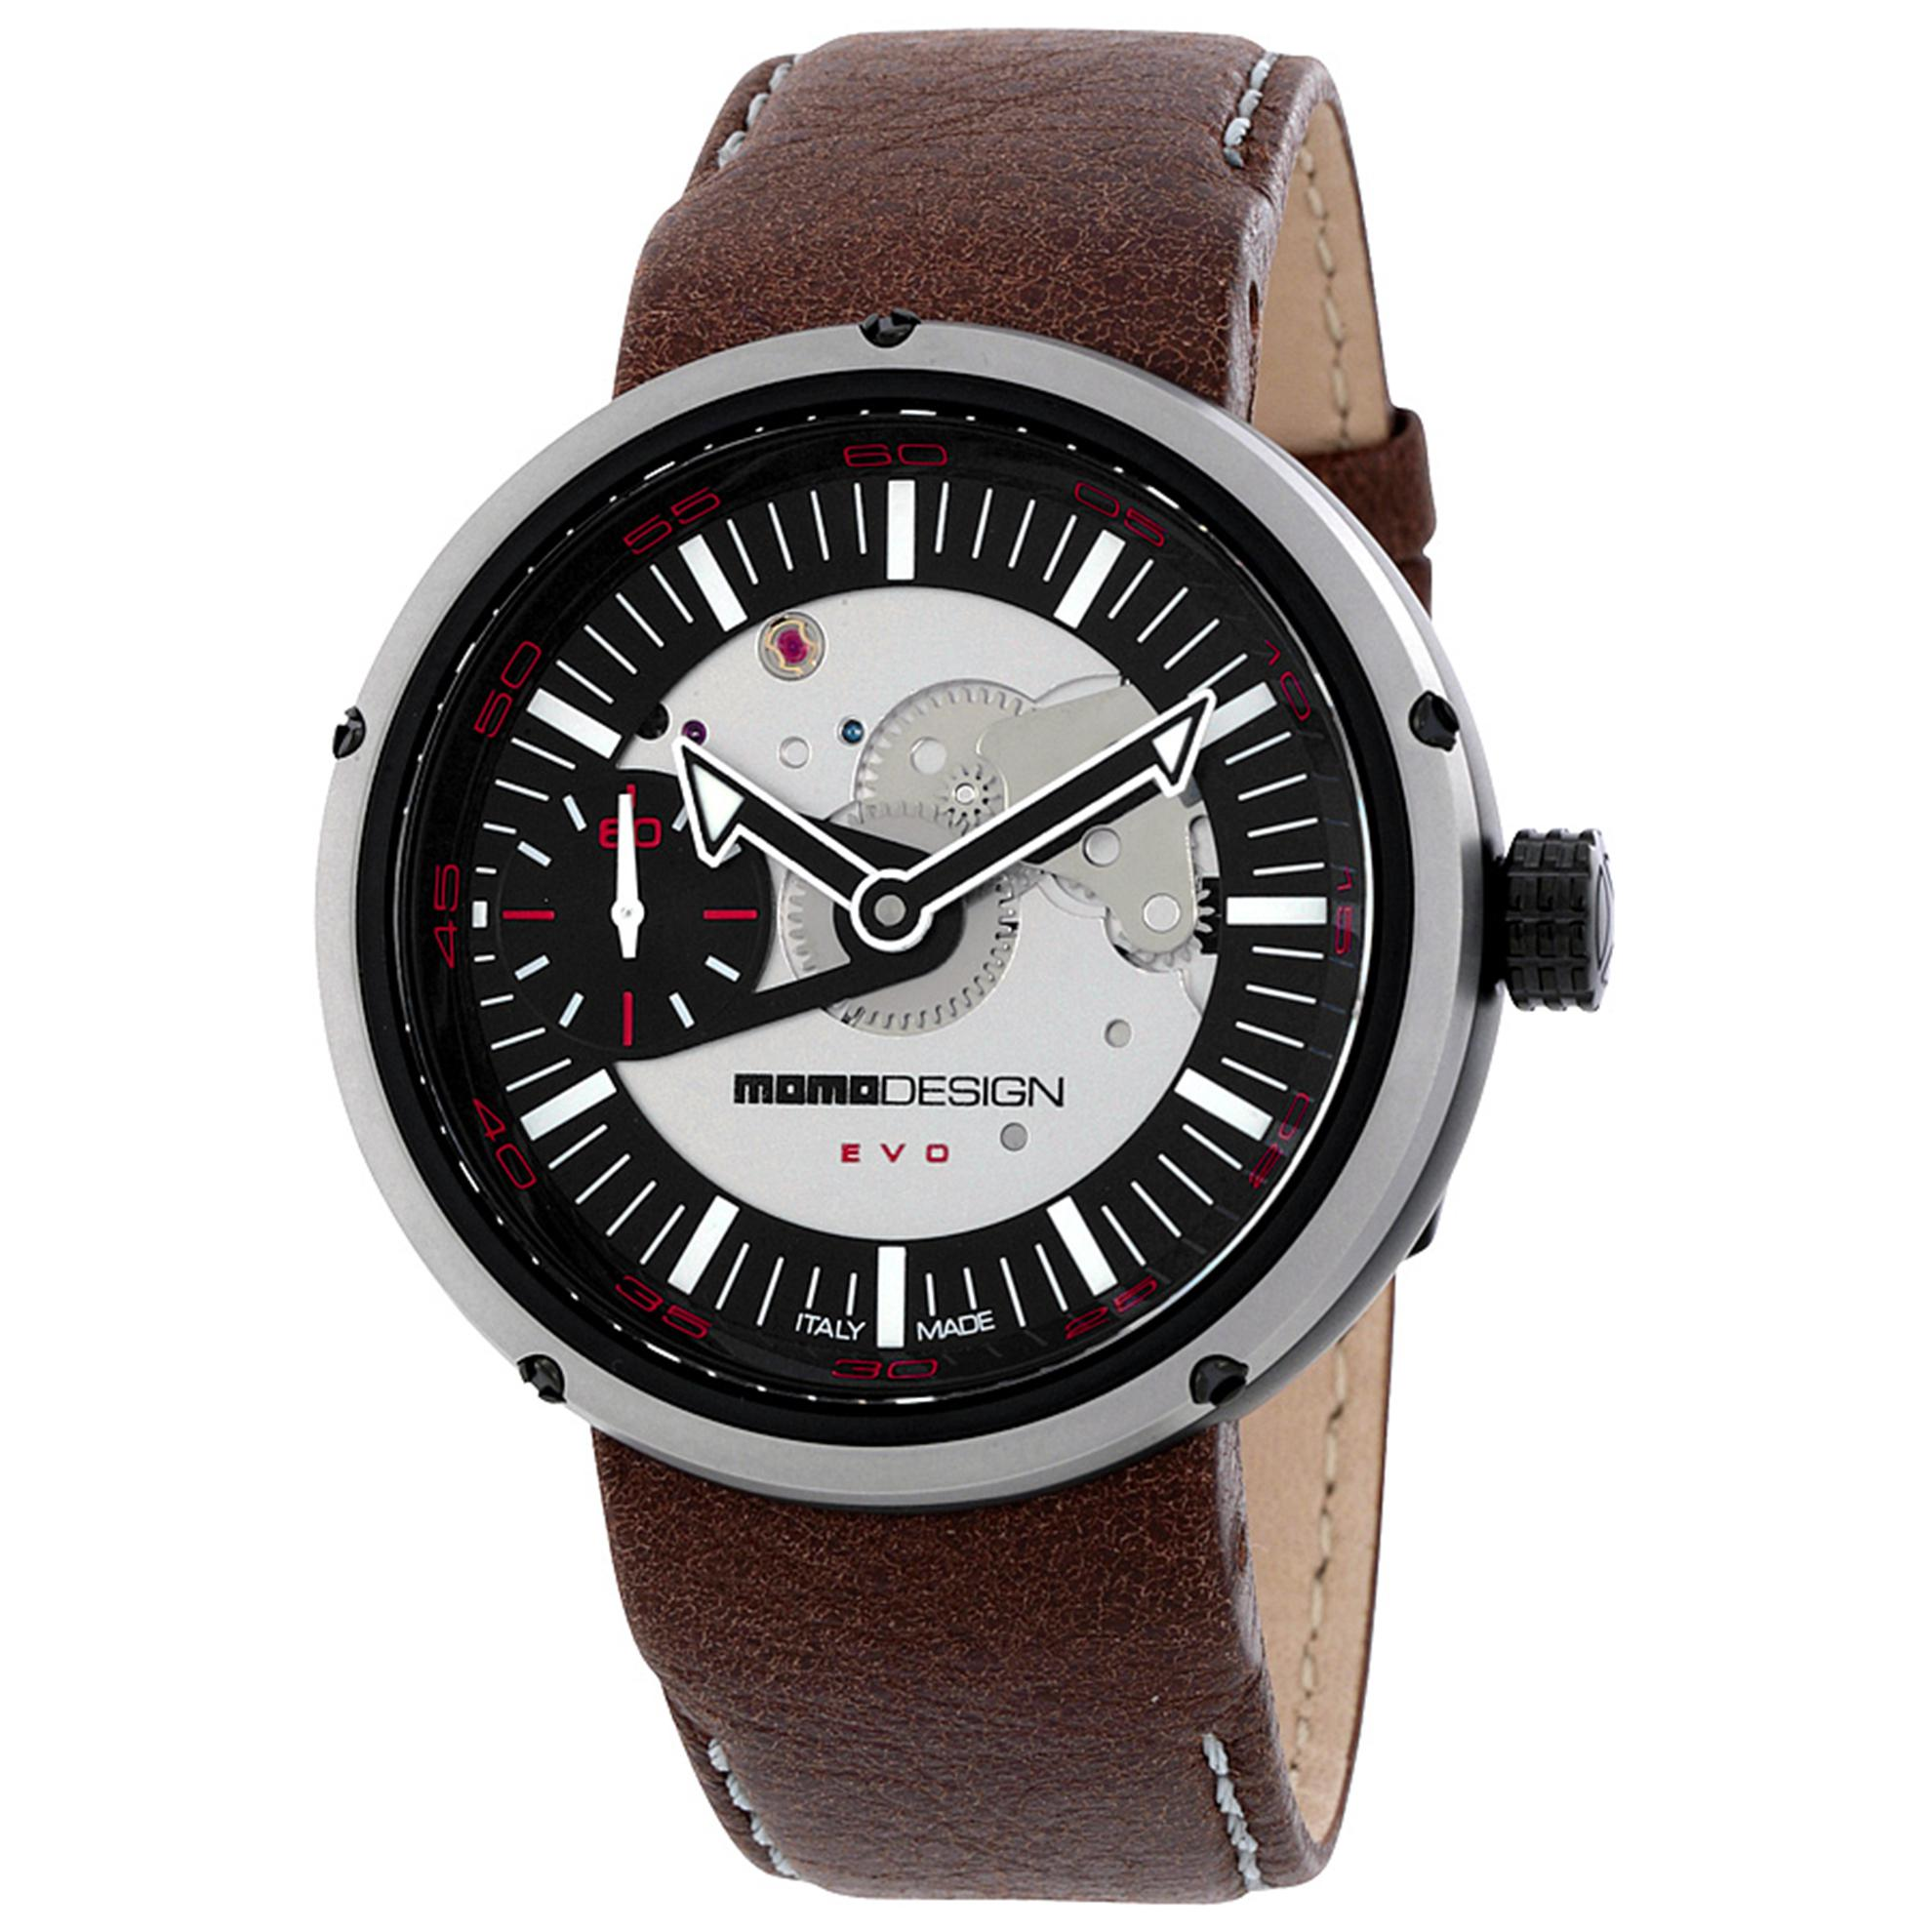 MOMO Design 1010BS-12 MOMO Design Limited Edition Evo Mechanical Automatic Black Dial Brown Leather Strap